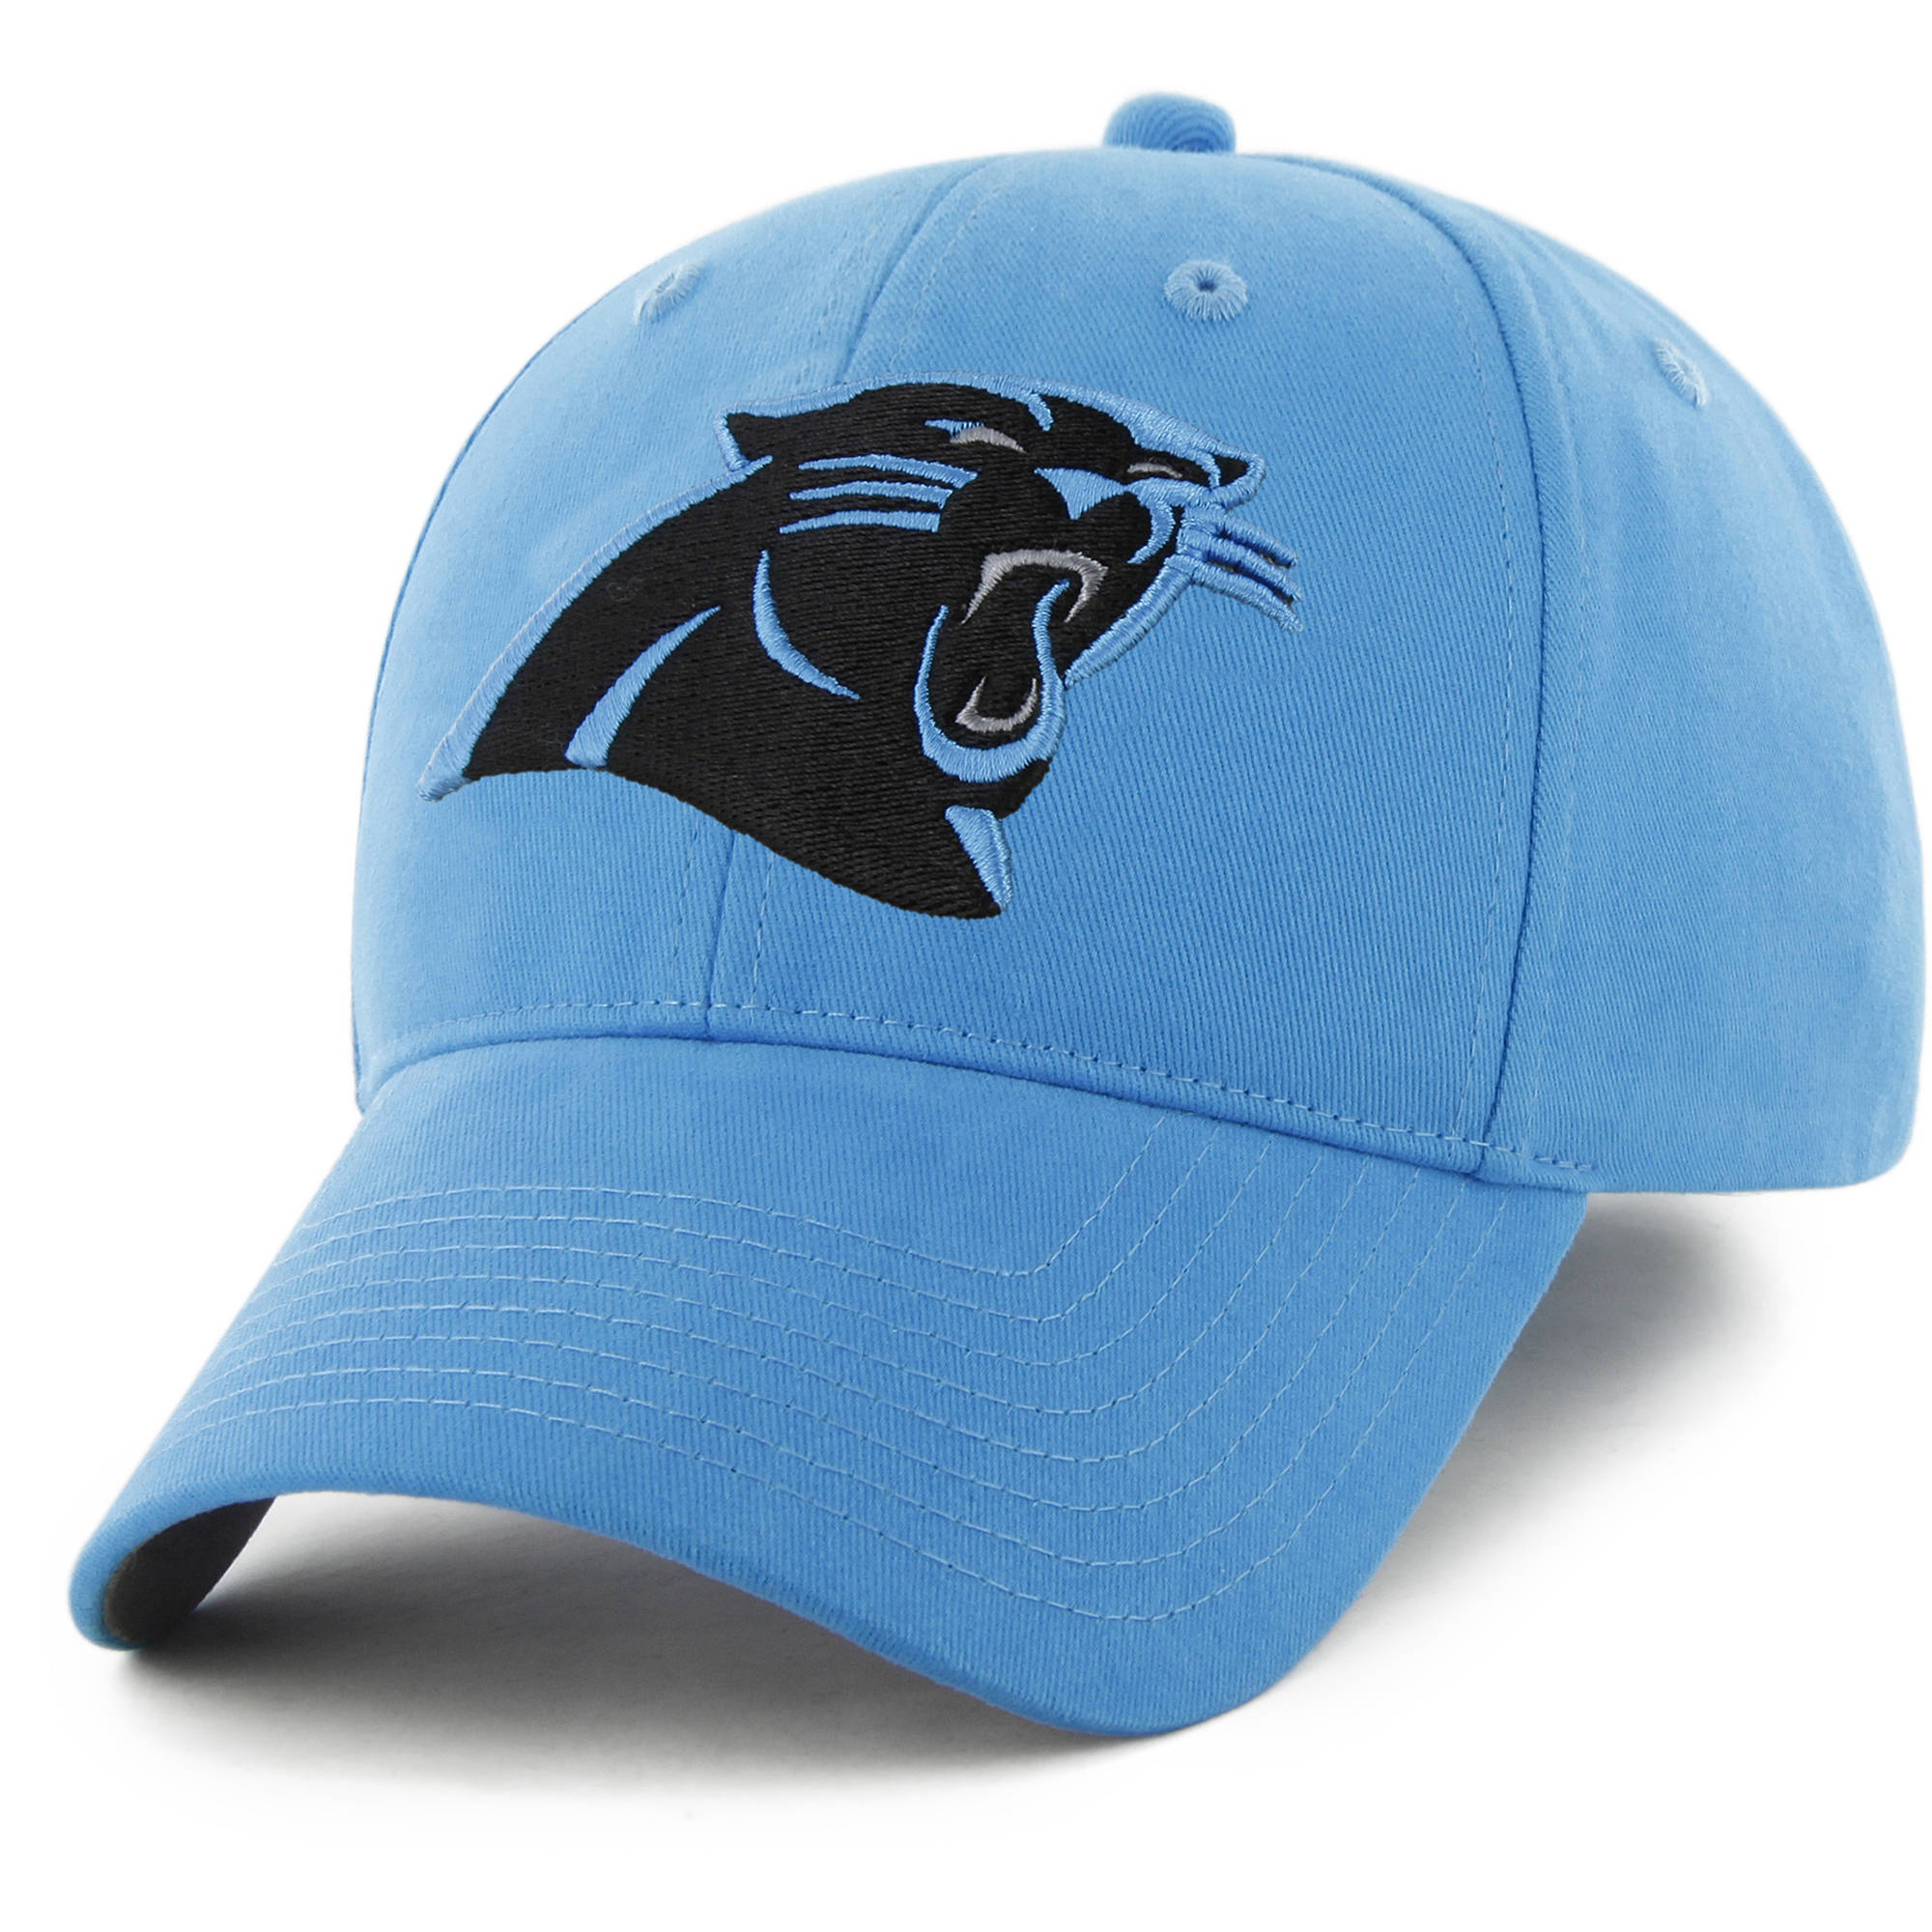 NFL Fan FavoriteBasic Cap, Carolina Panthers